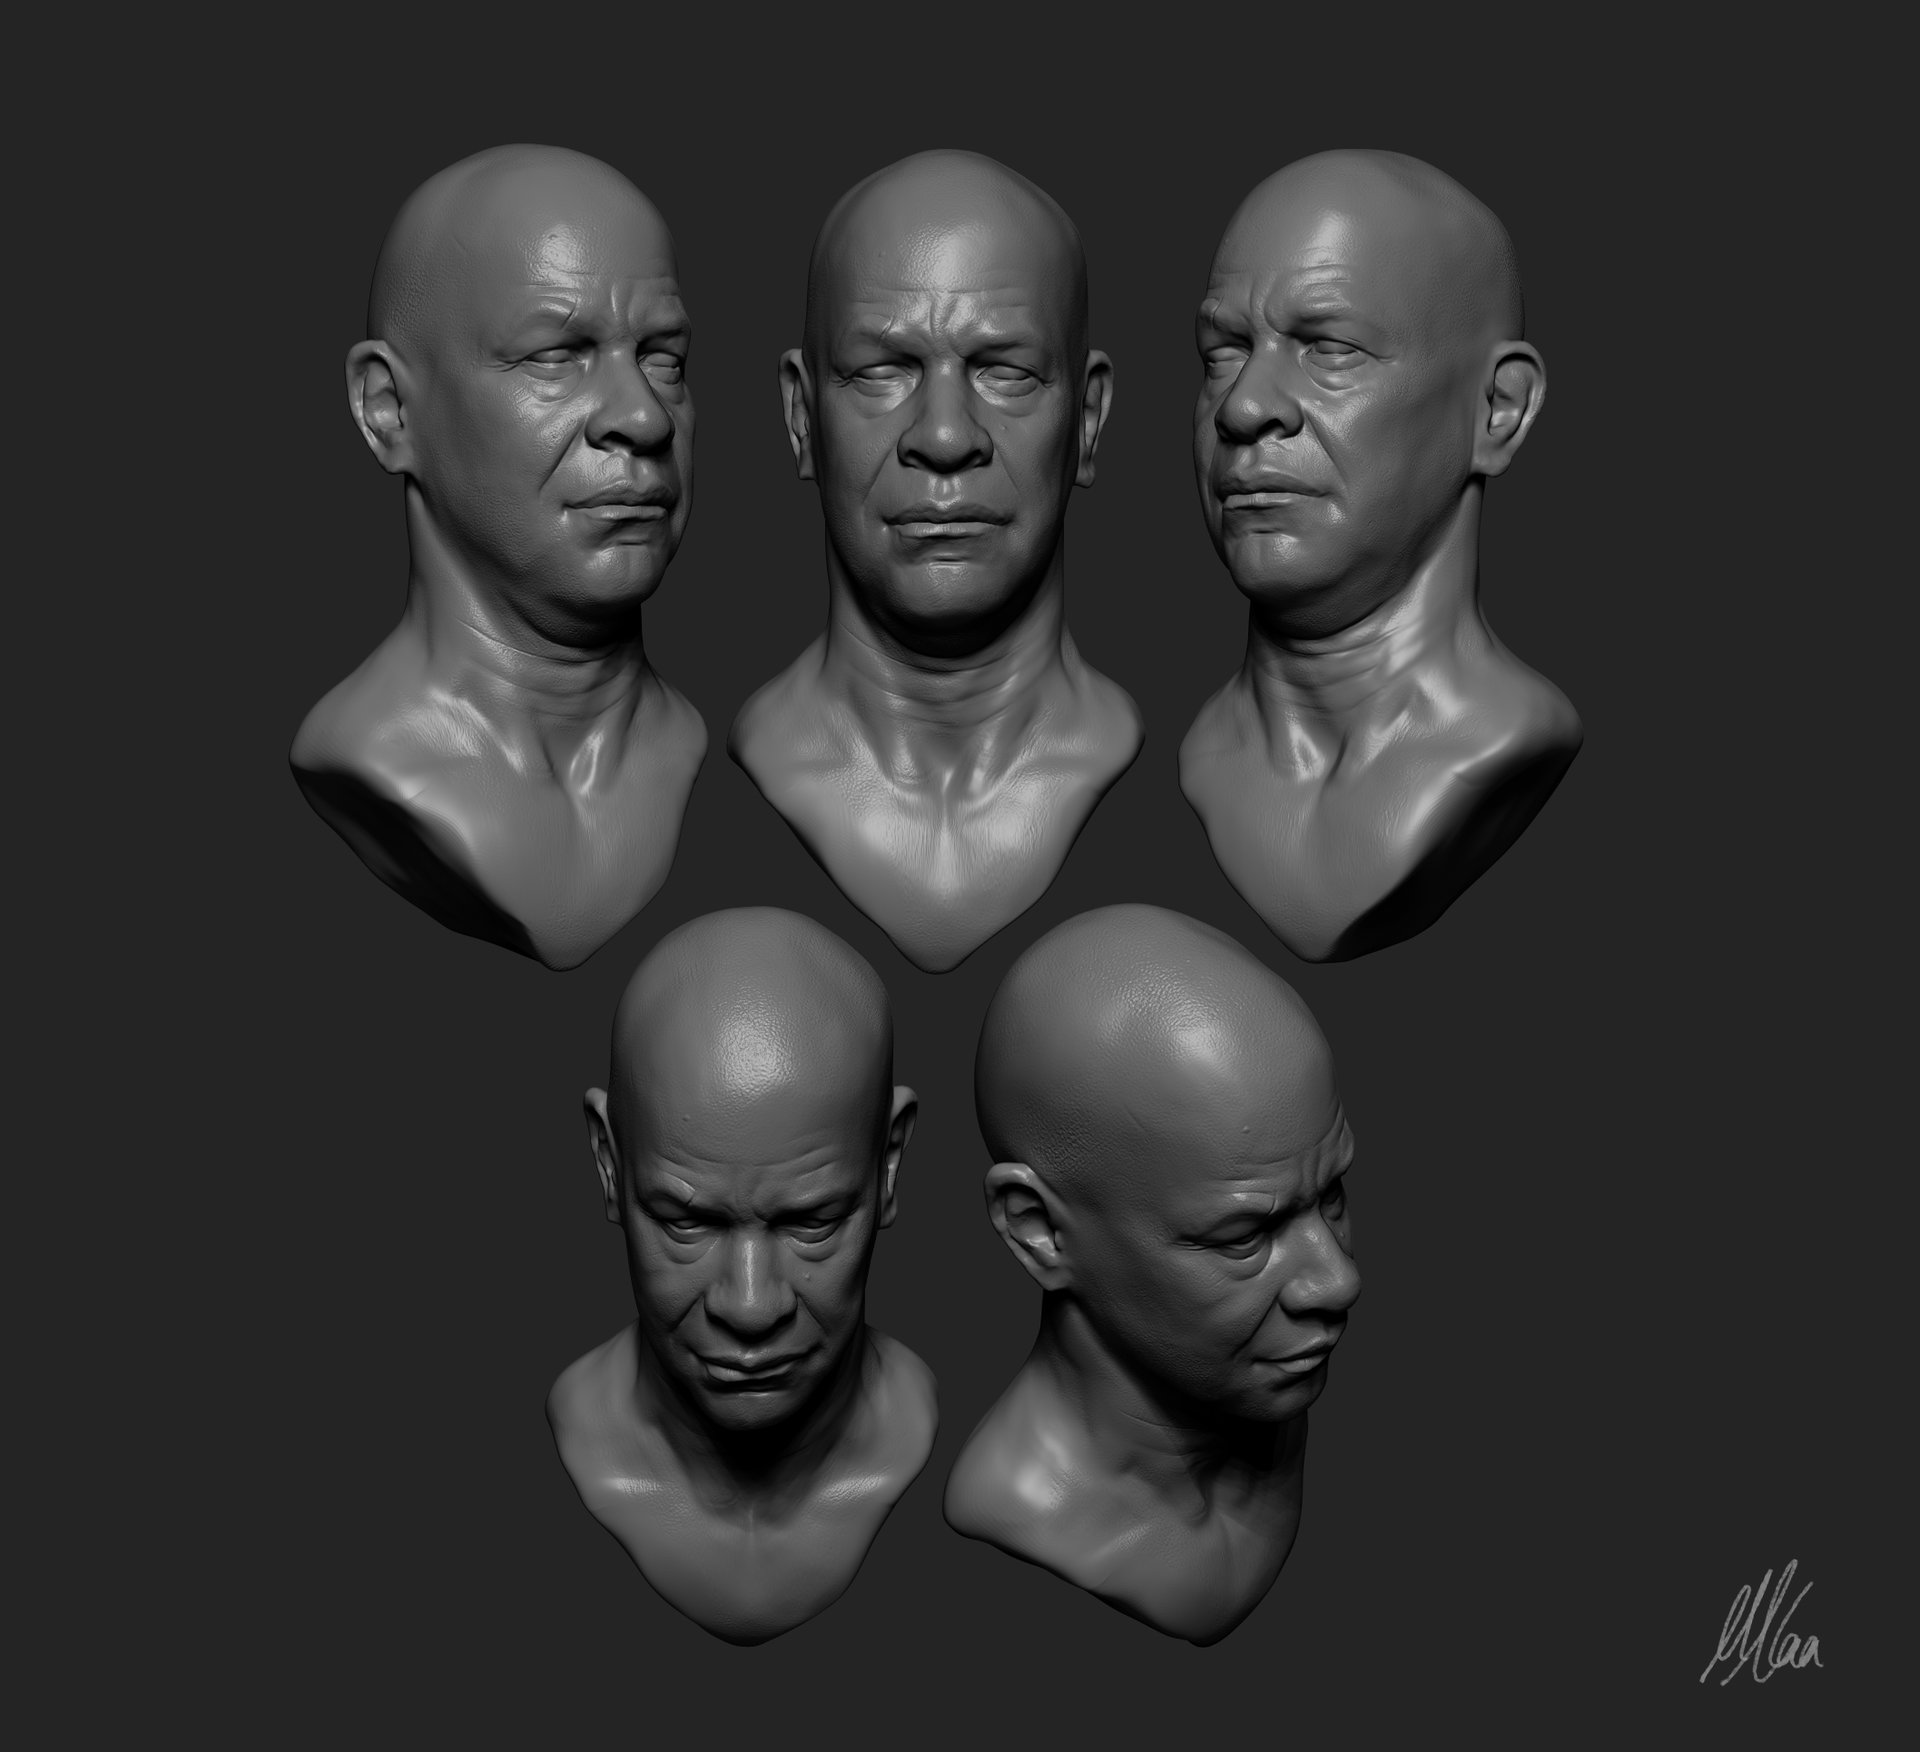 Mohamed alaa zbrush document6